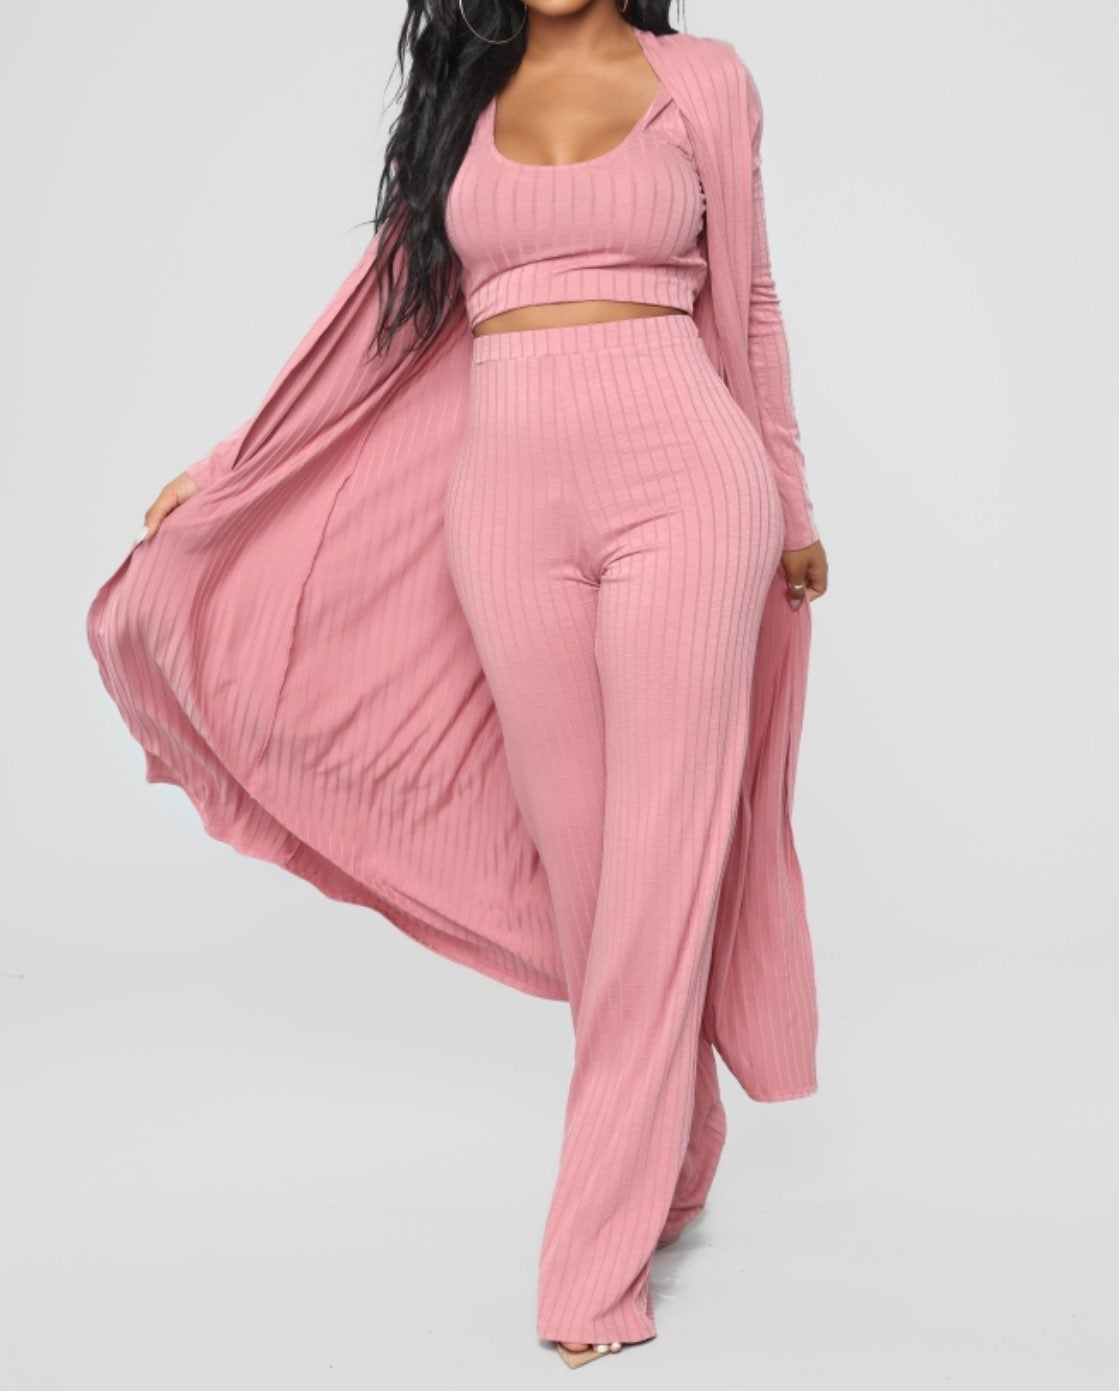 RESERVED LISTING - WILD DREAMS 3 PIECE M